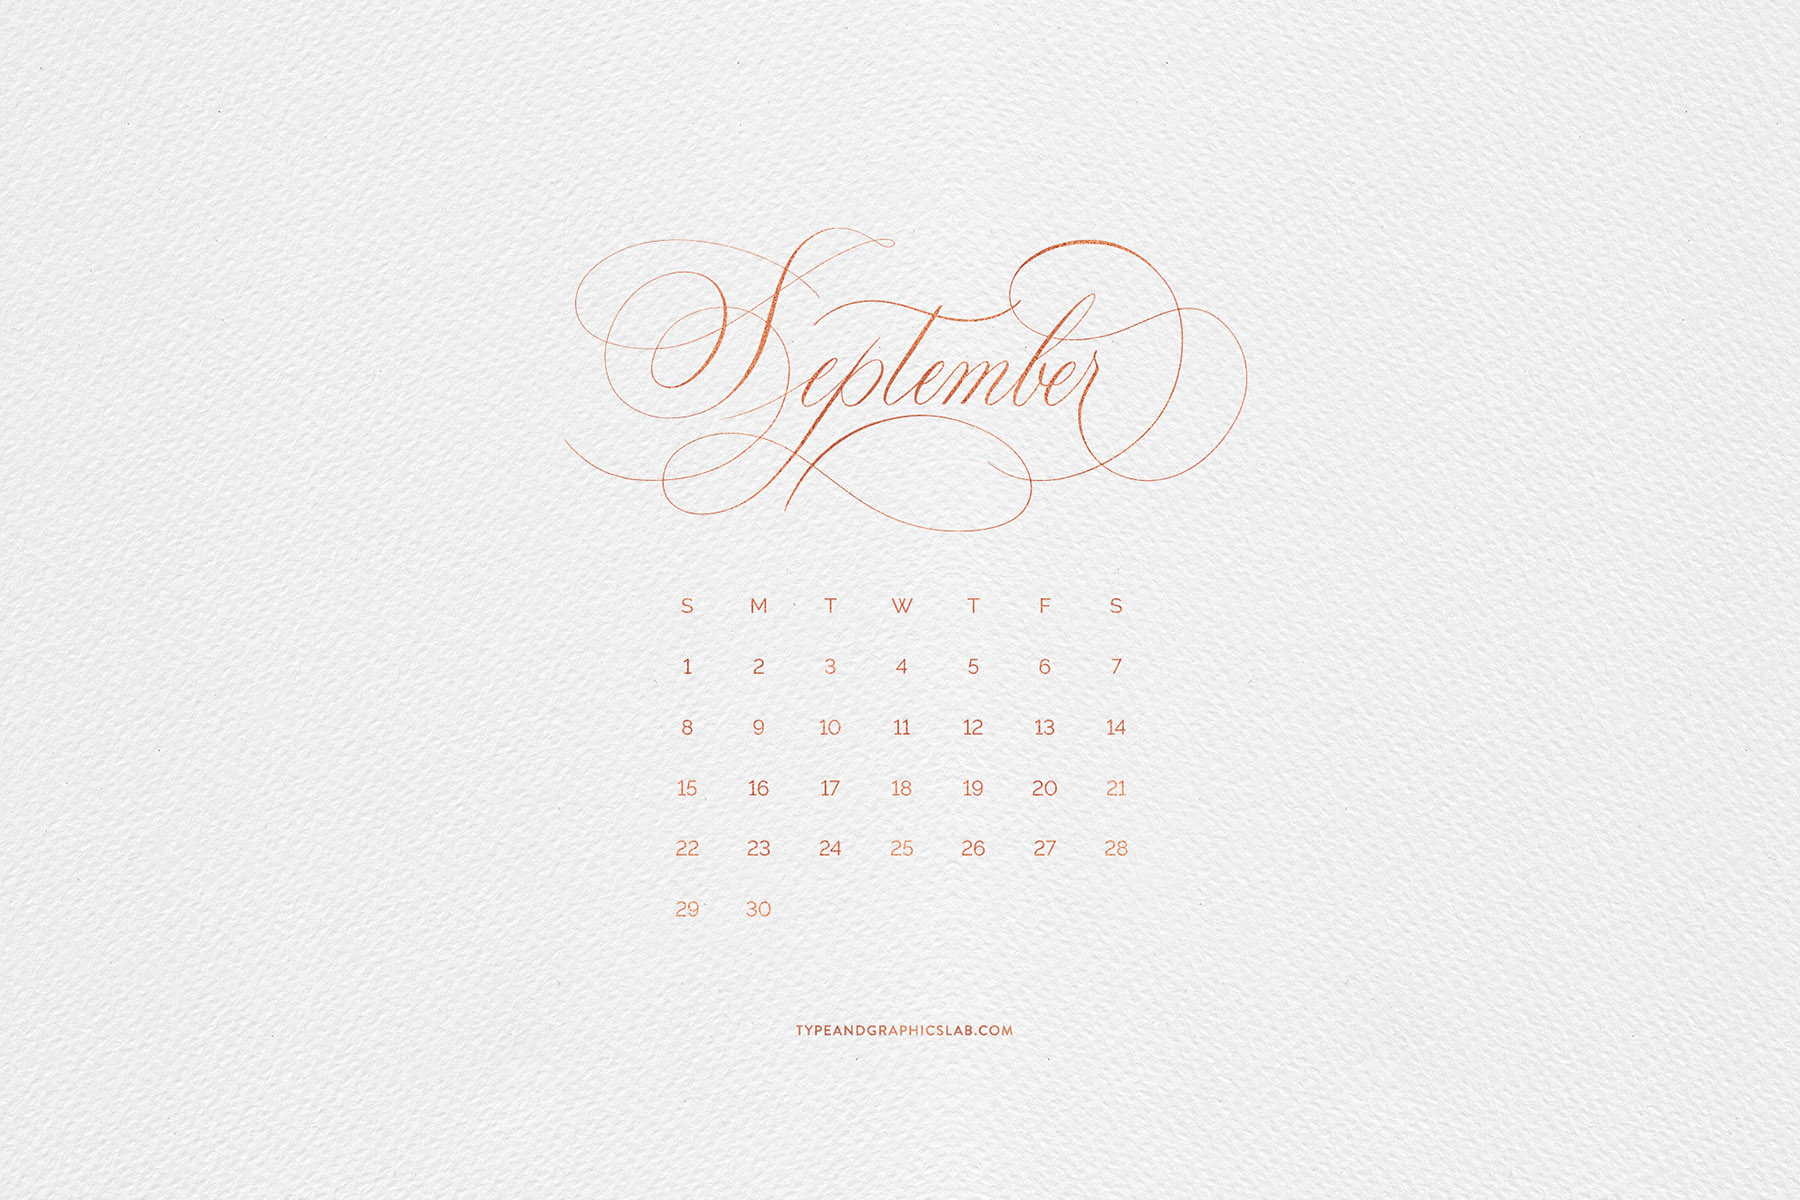 Download free desktop, mobile, and printable calendar for September 2019 | © typeandgraphicslab.com | For personal use only